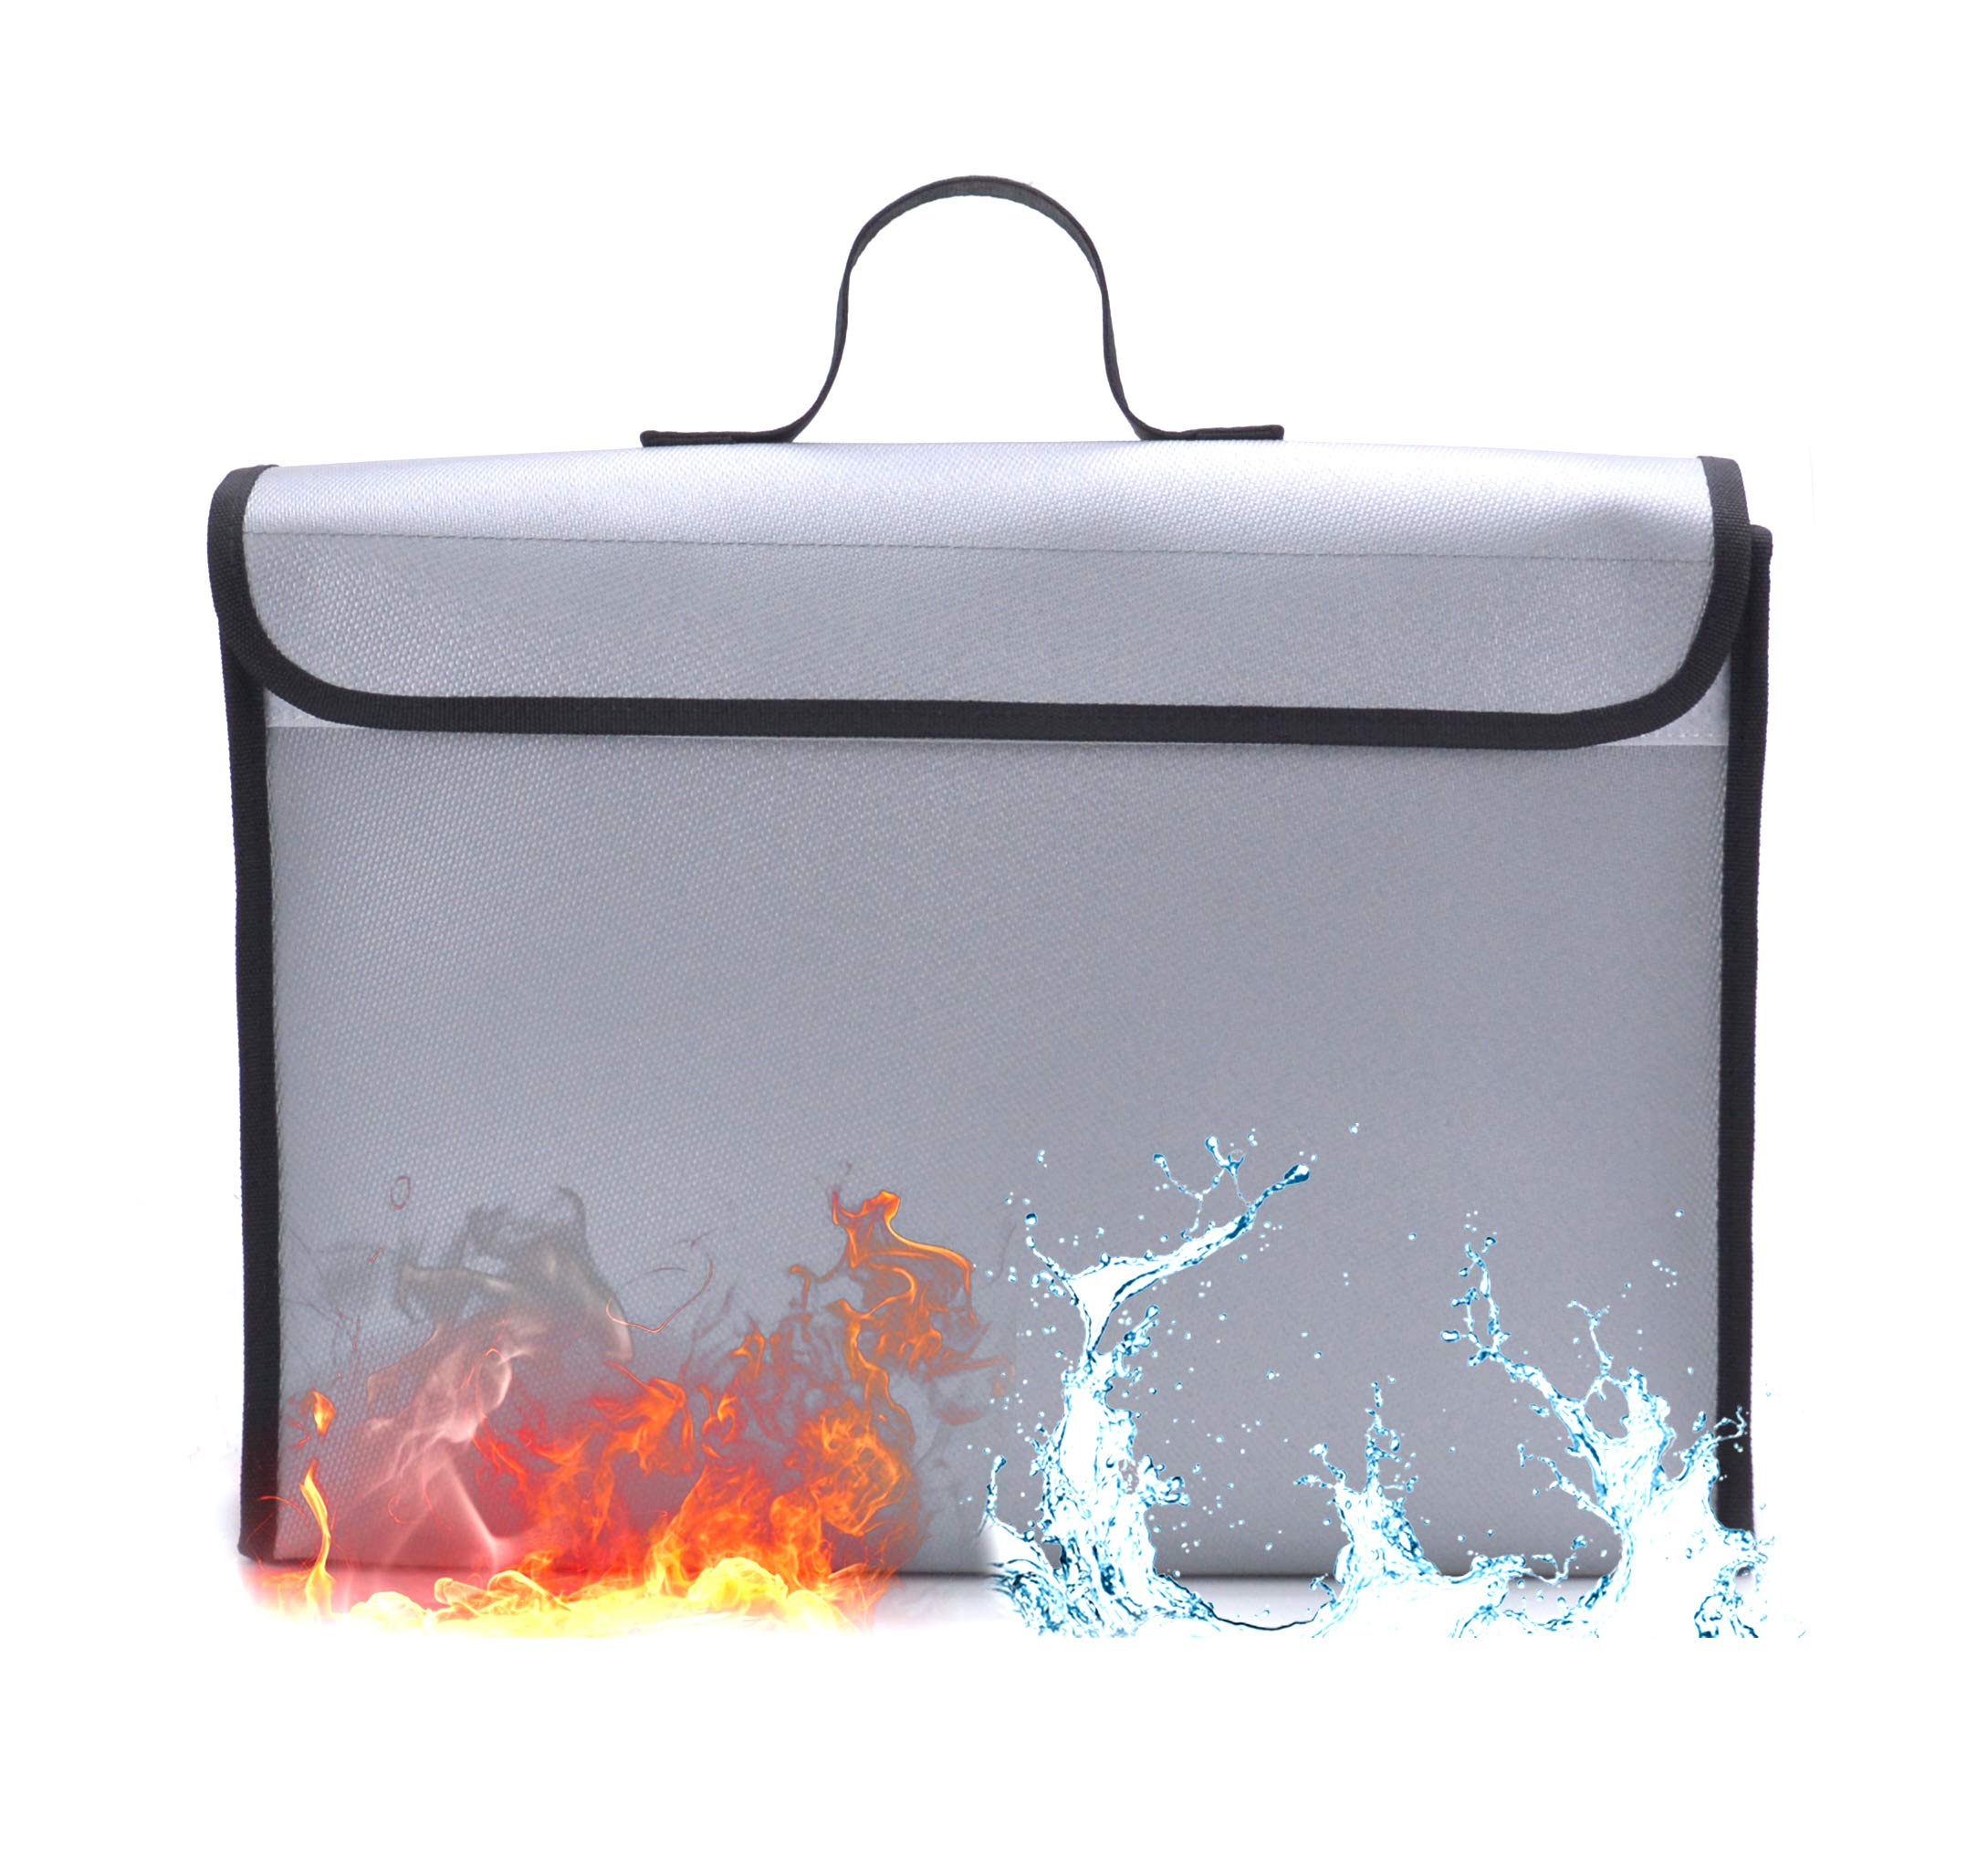 """YoungRC Fireproof Document Bag 15""""x11""""x3"""" Silicone Coated Fire Resistant Money Bag Fireproof Safe Storage for Cash, Files, Jewelry and Passport"""